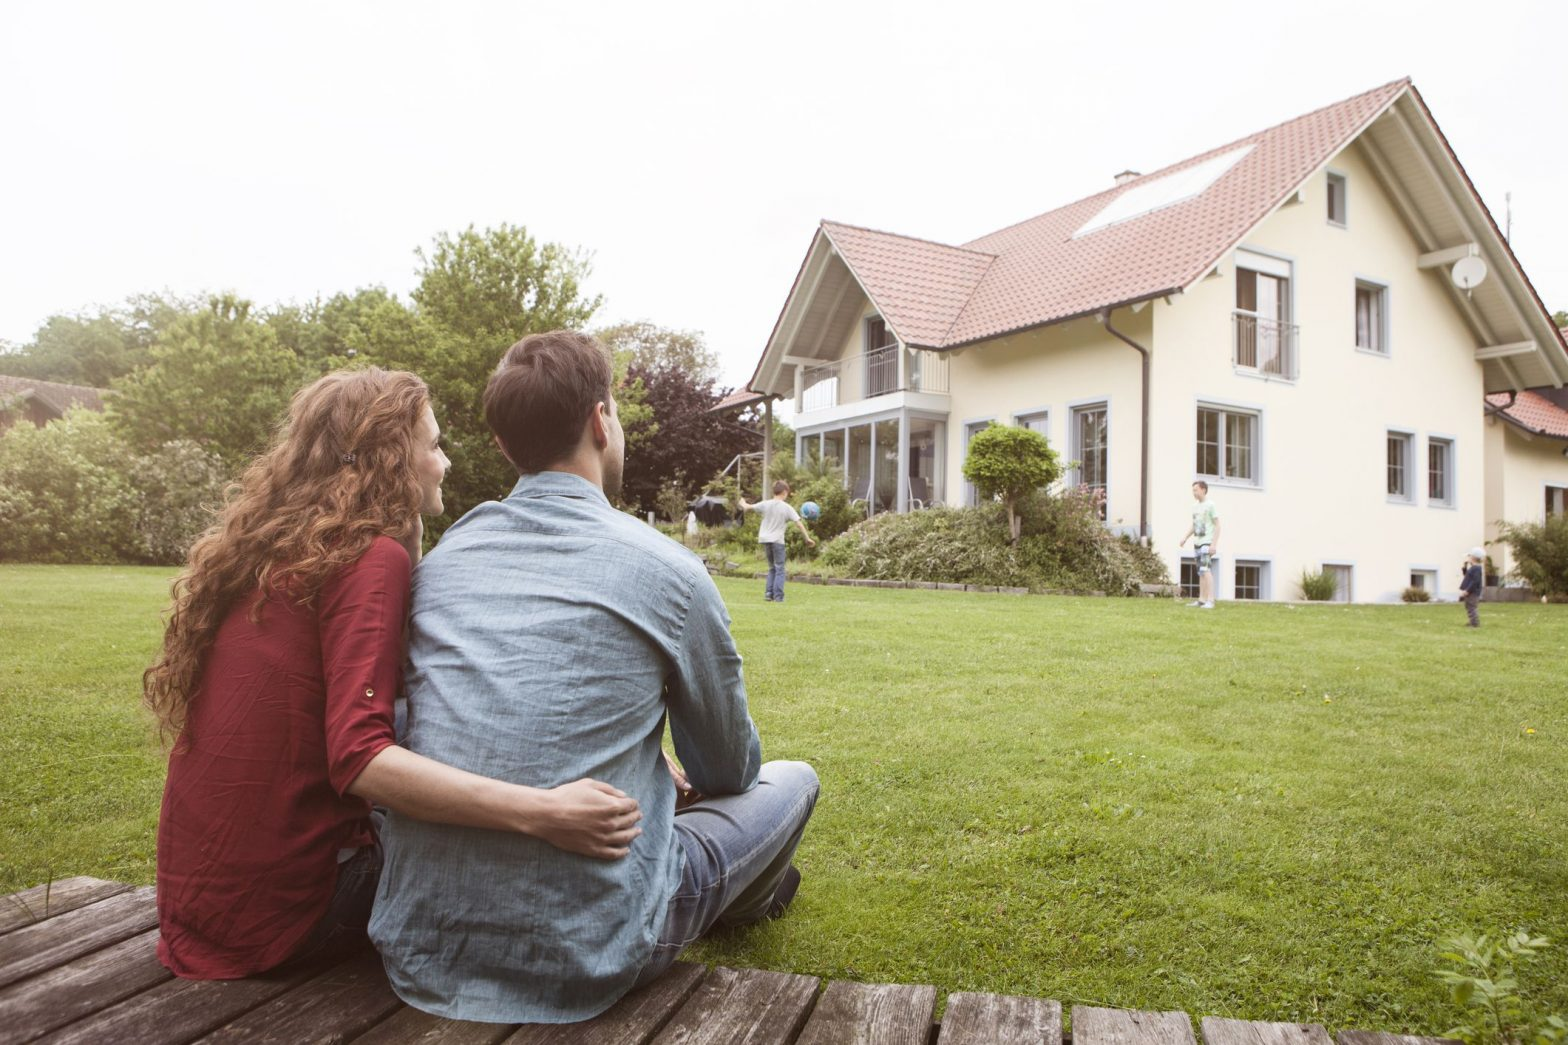 Crucial Tips You Should Know Before Making Any Home Purchase